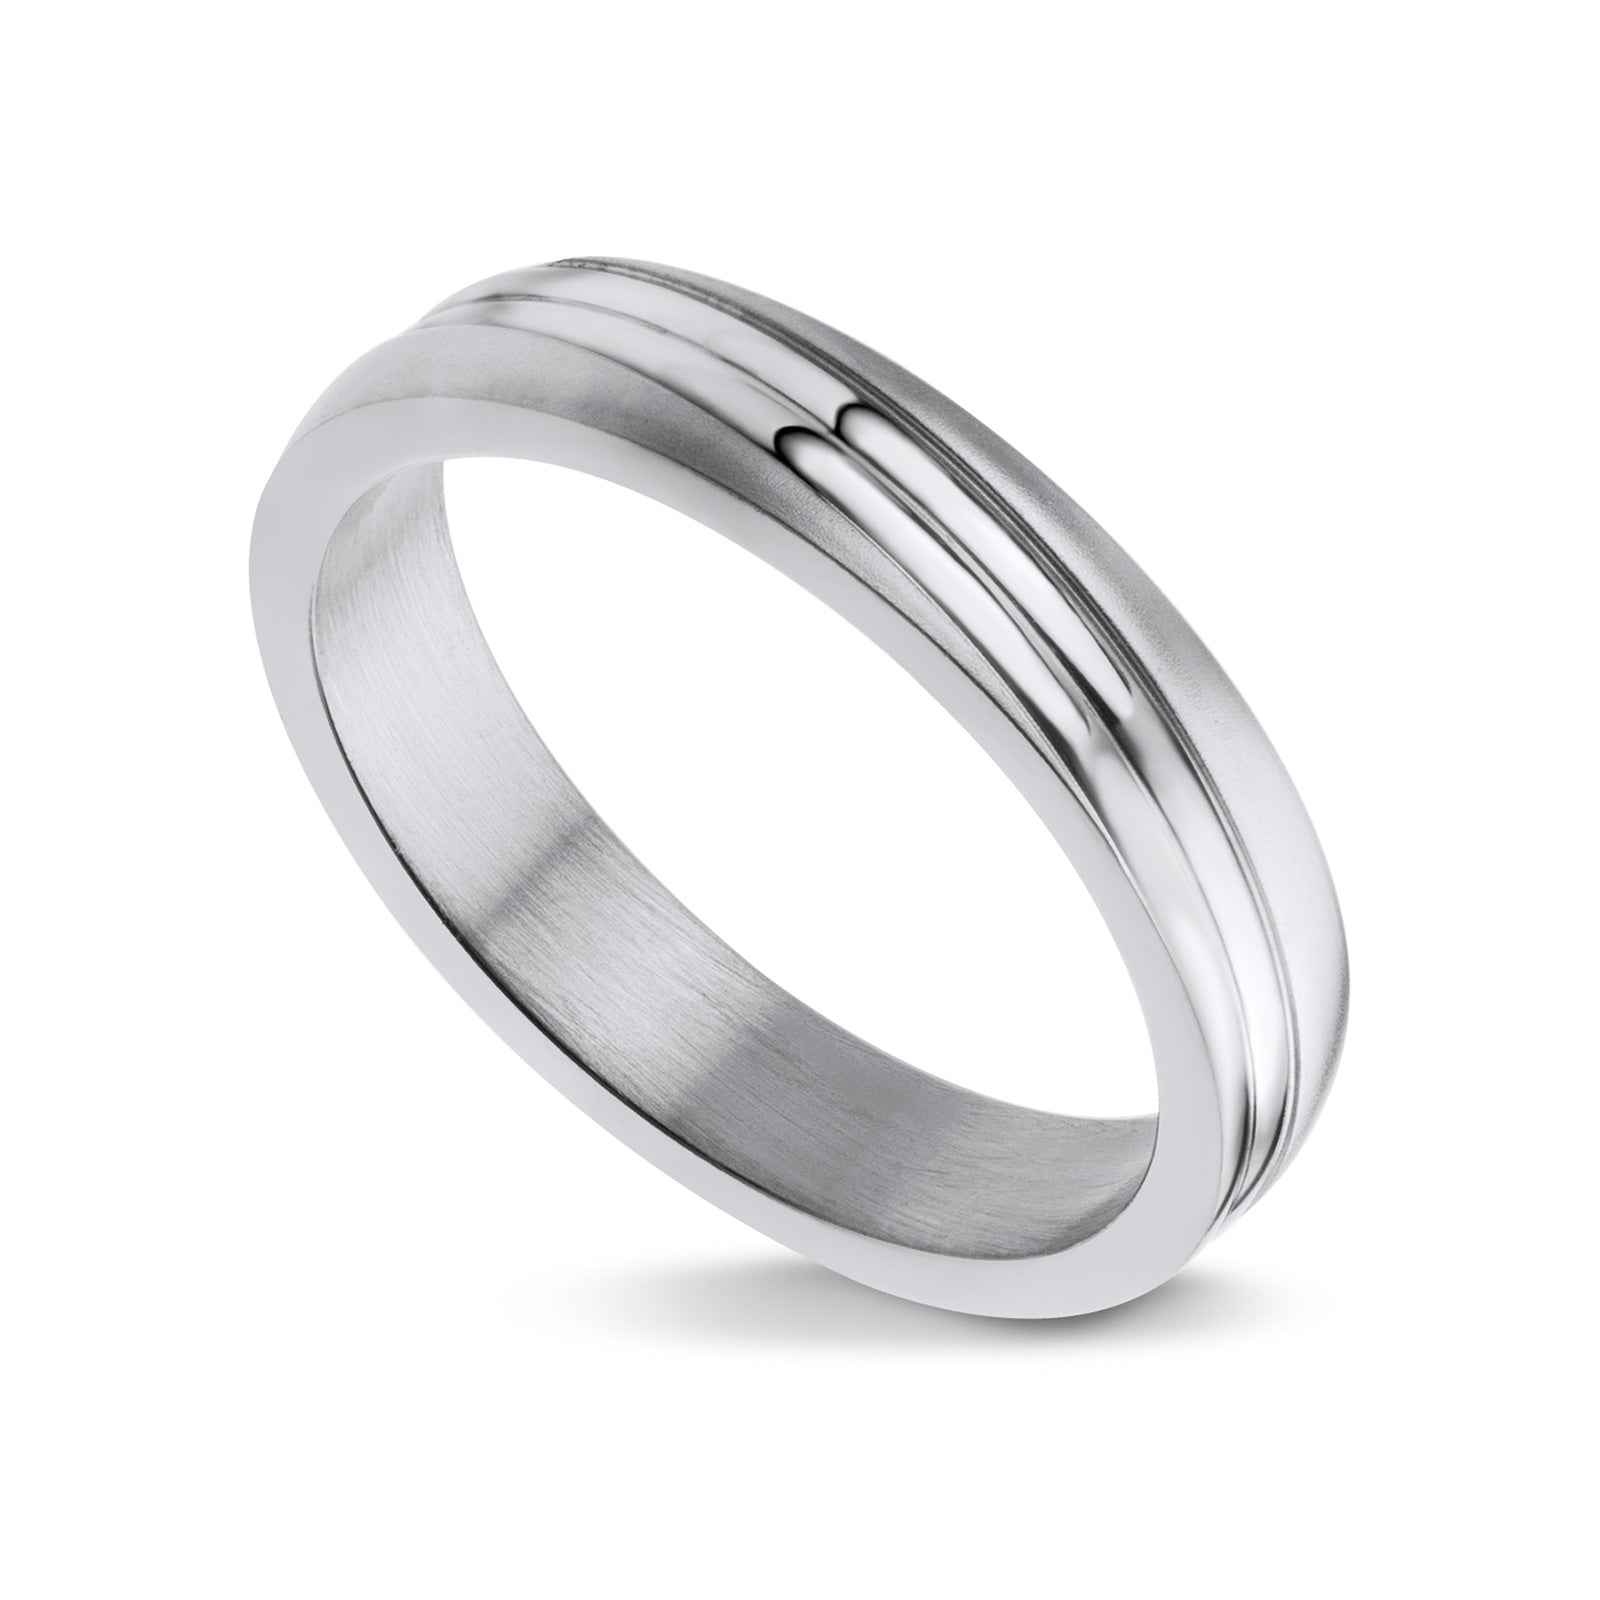 HVN-R030-A  Stainless Steel Ring